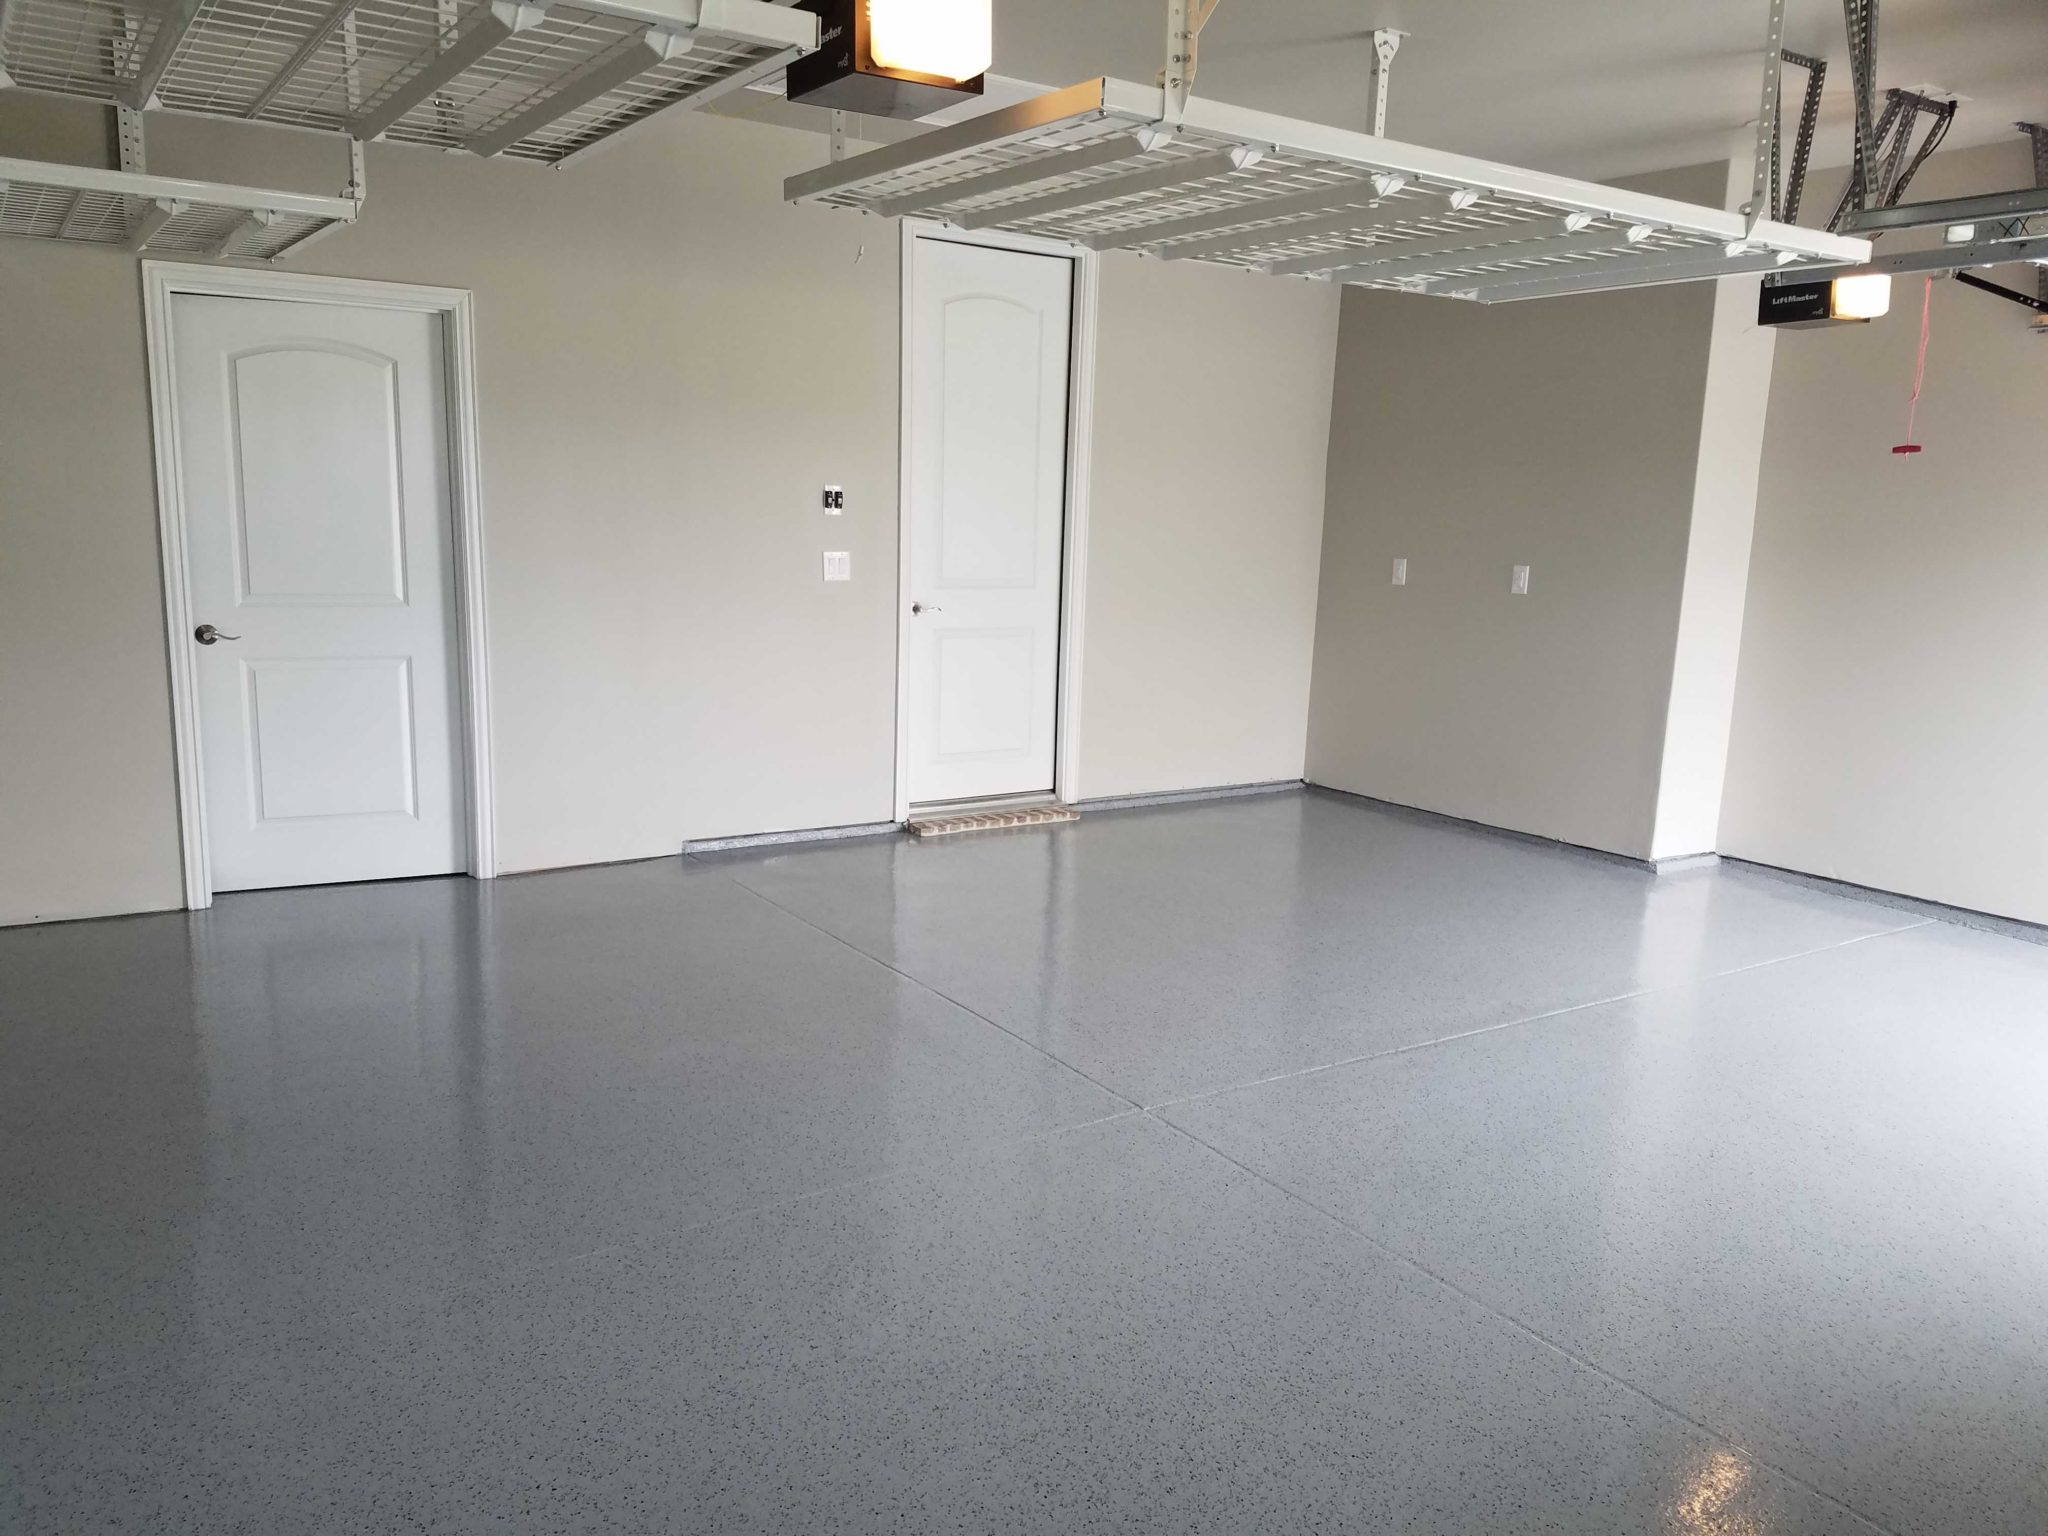 Garage Epoxy Cure Time Maintenance Care Cleaning And Caring For Your Epoxy Floor